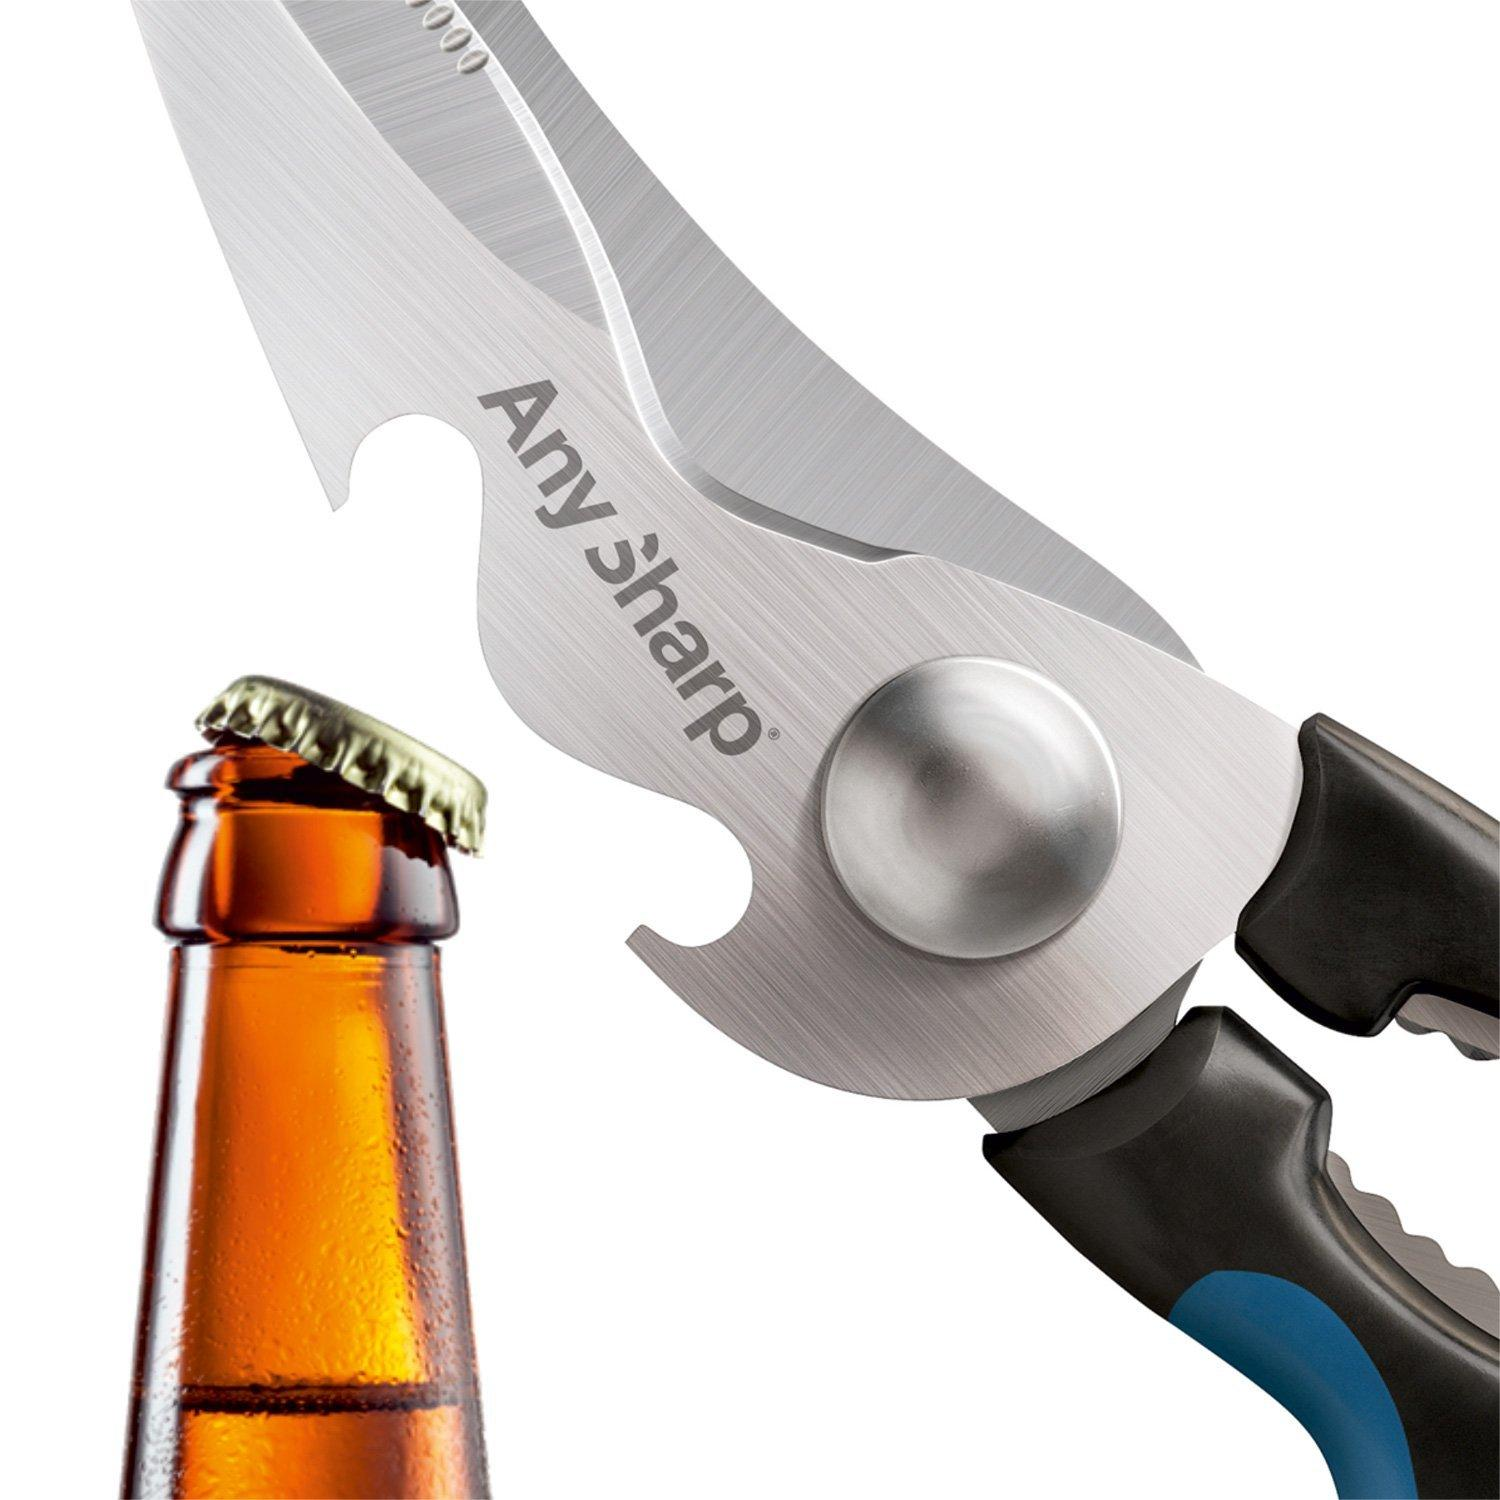 AnySharp 5-in-1 Smart Scissors